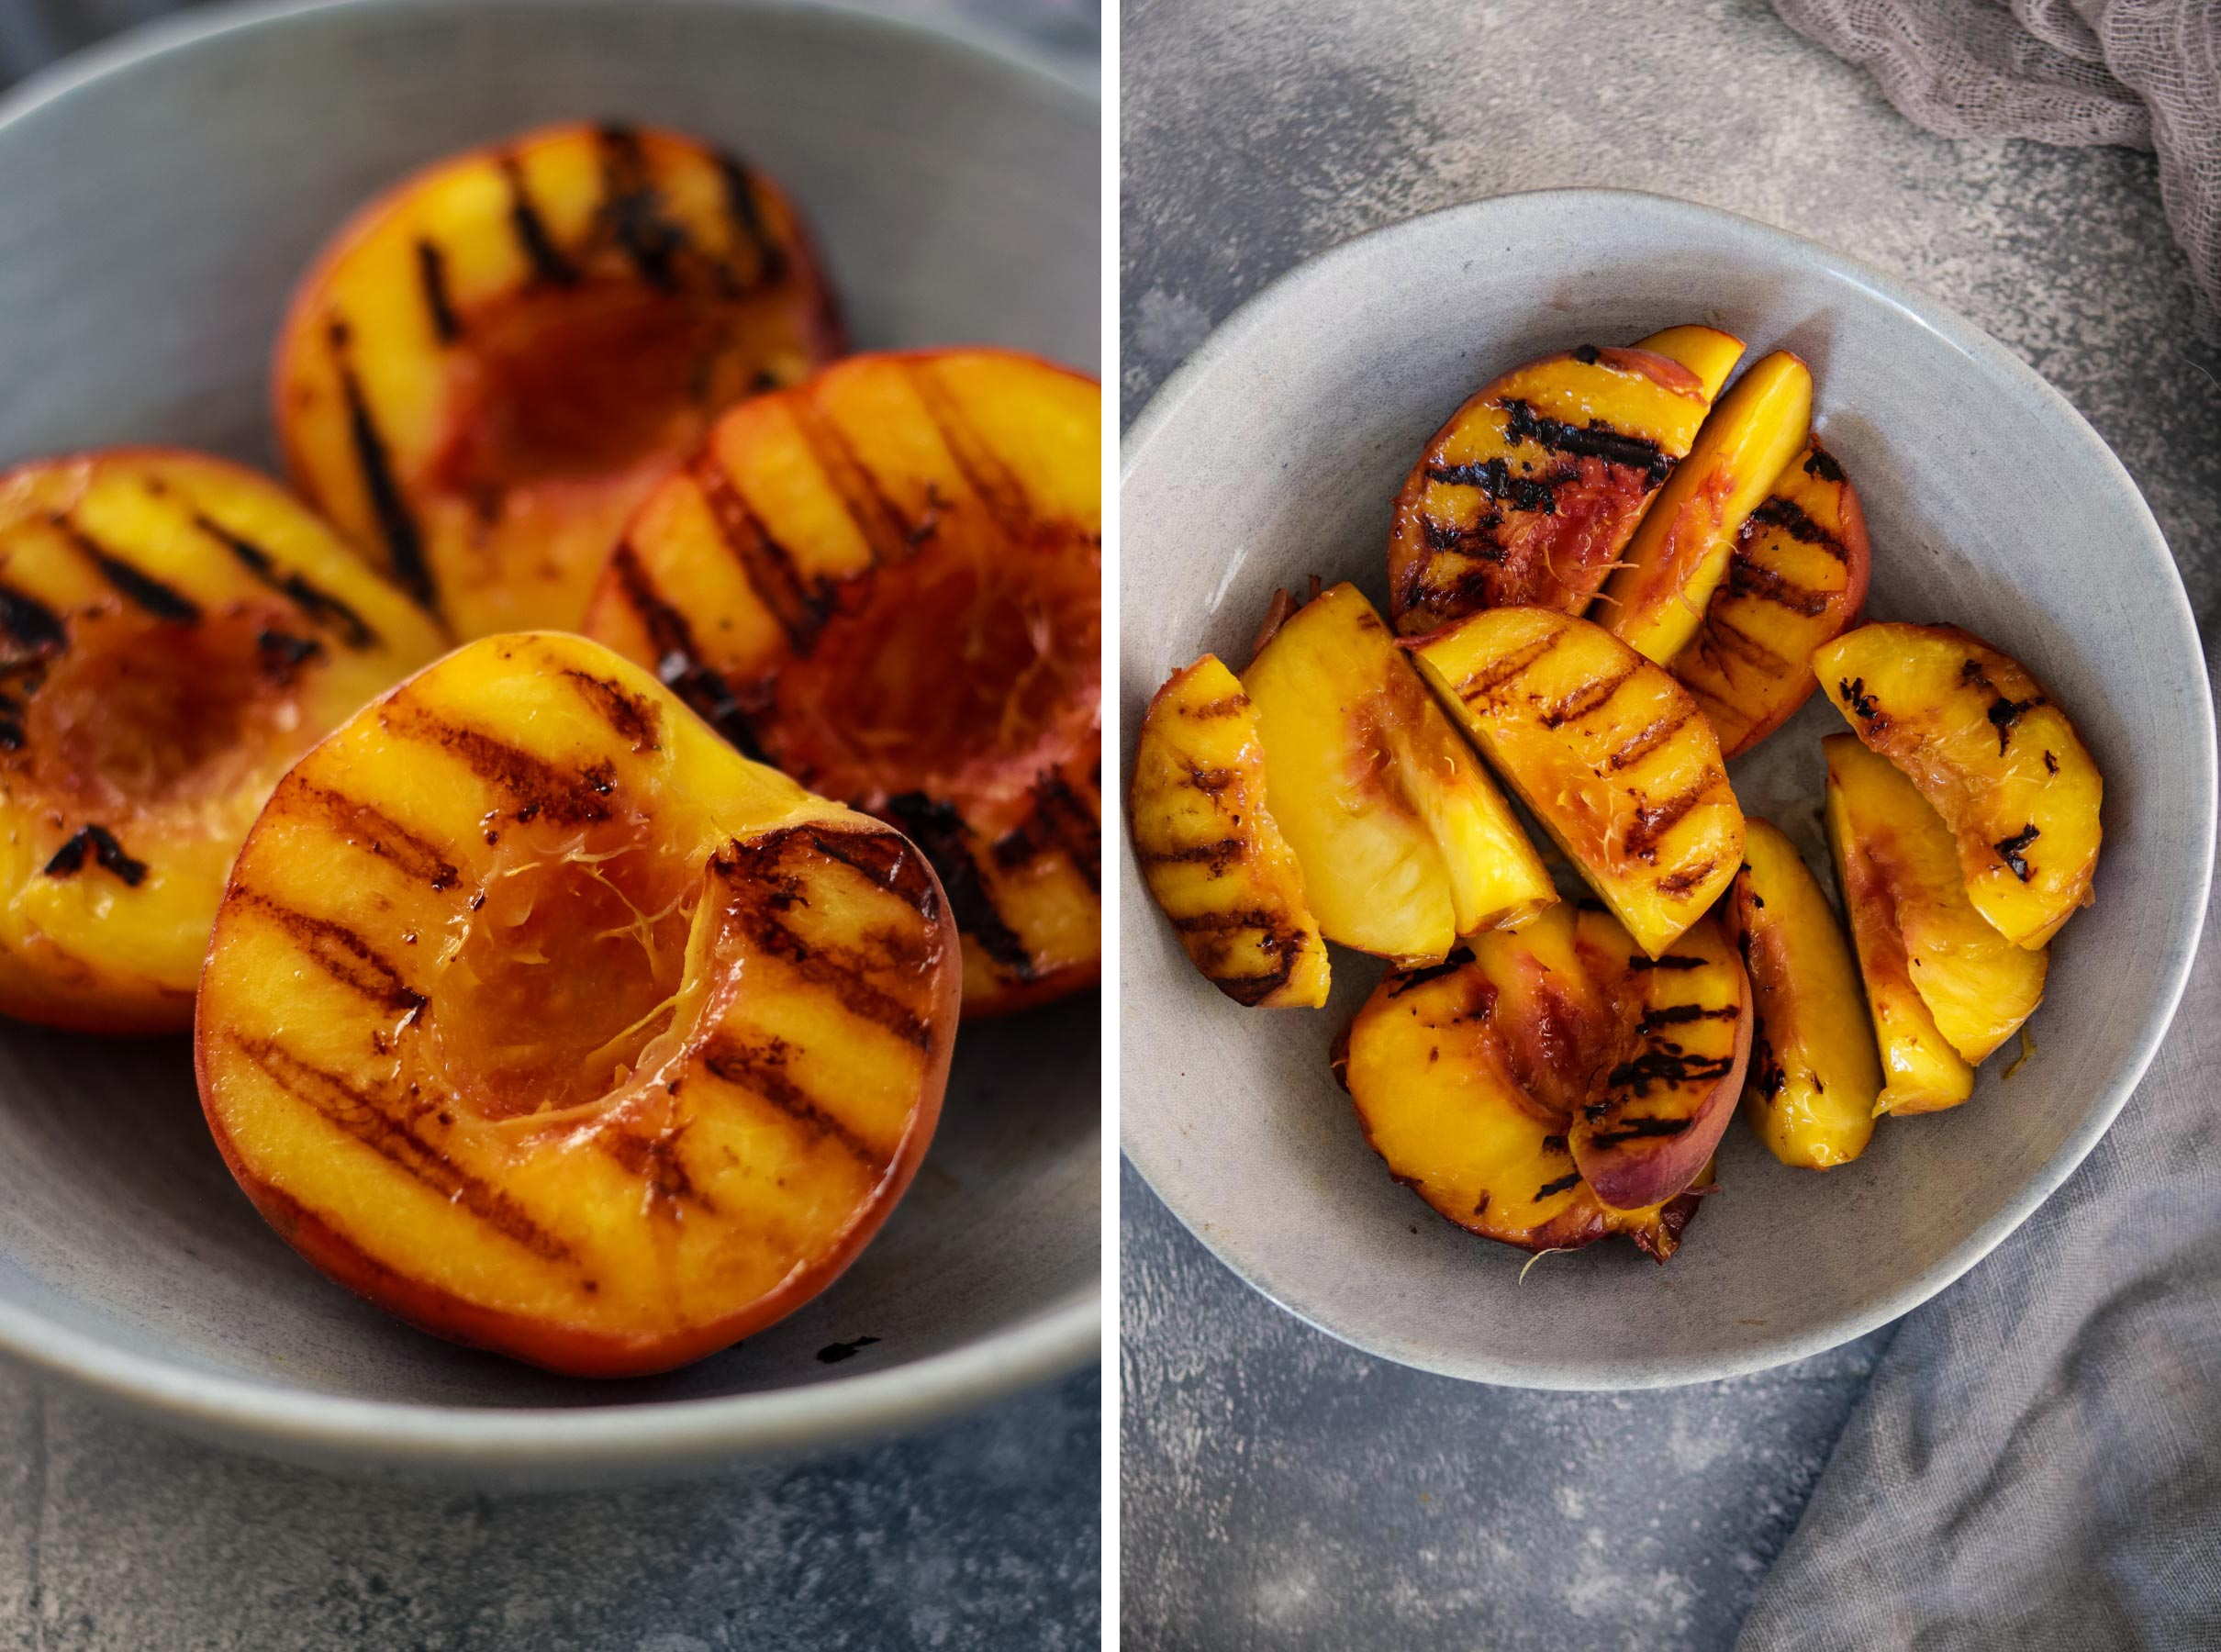 Grilled Peaches Next to Sliced Grilled Peaches in a Bowl